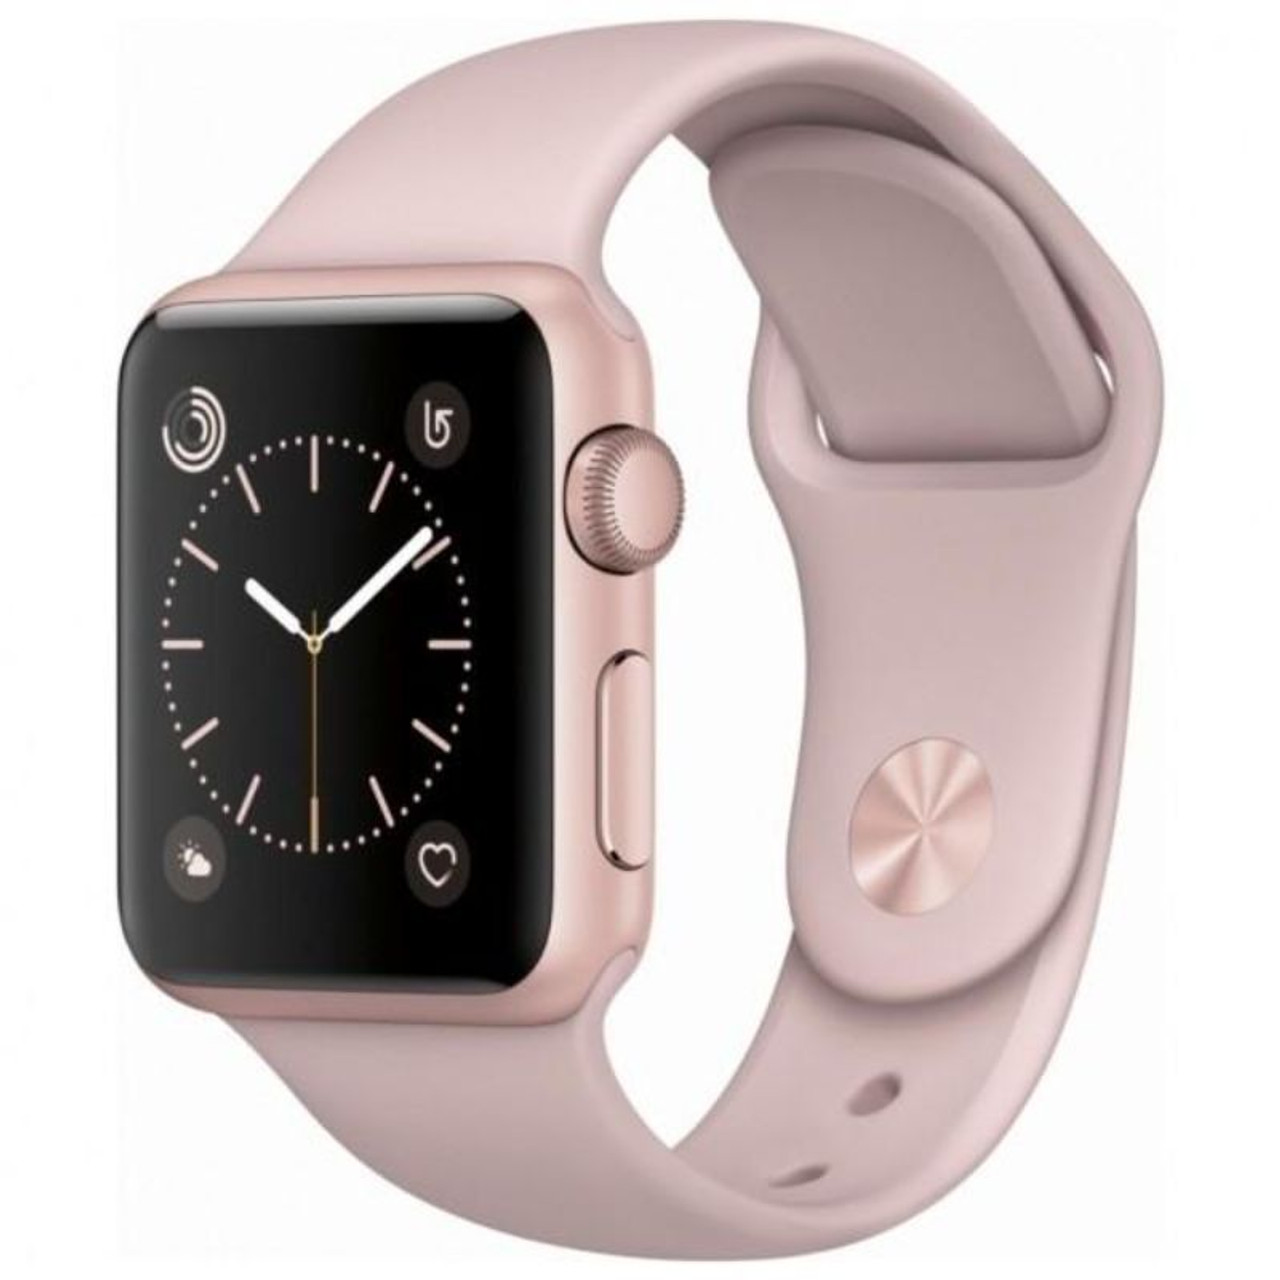 Apple Watch Series 1 38mm or 42mm Smart Watch Aluminum Case with Sport Band